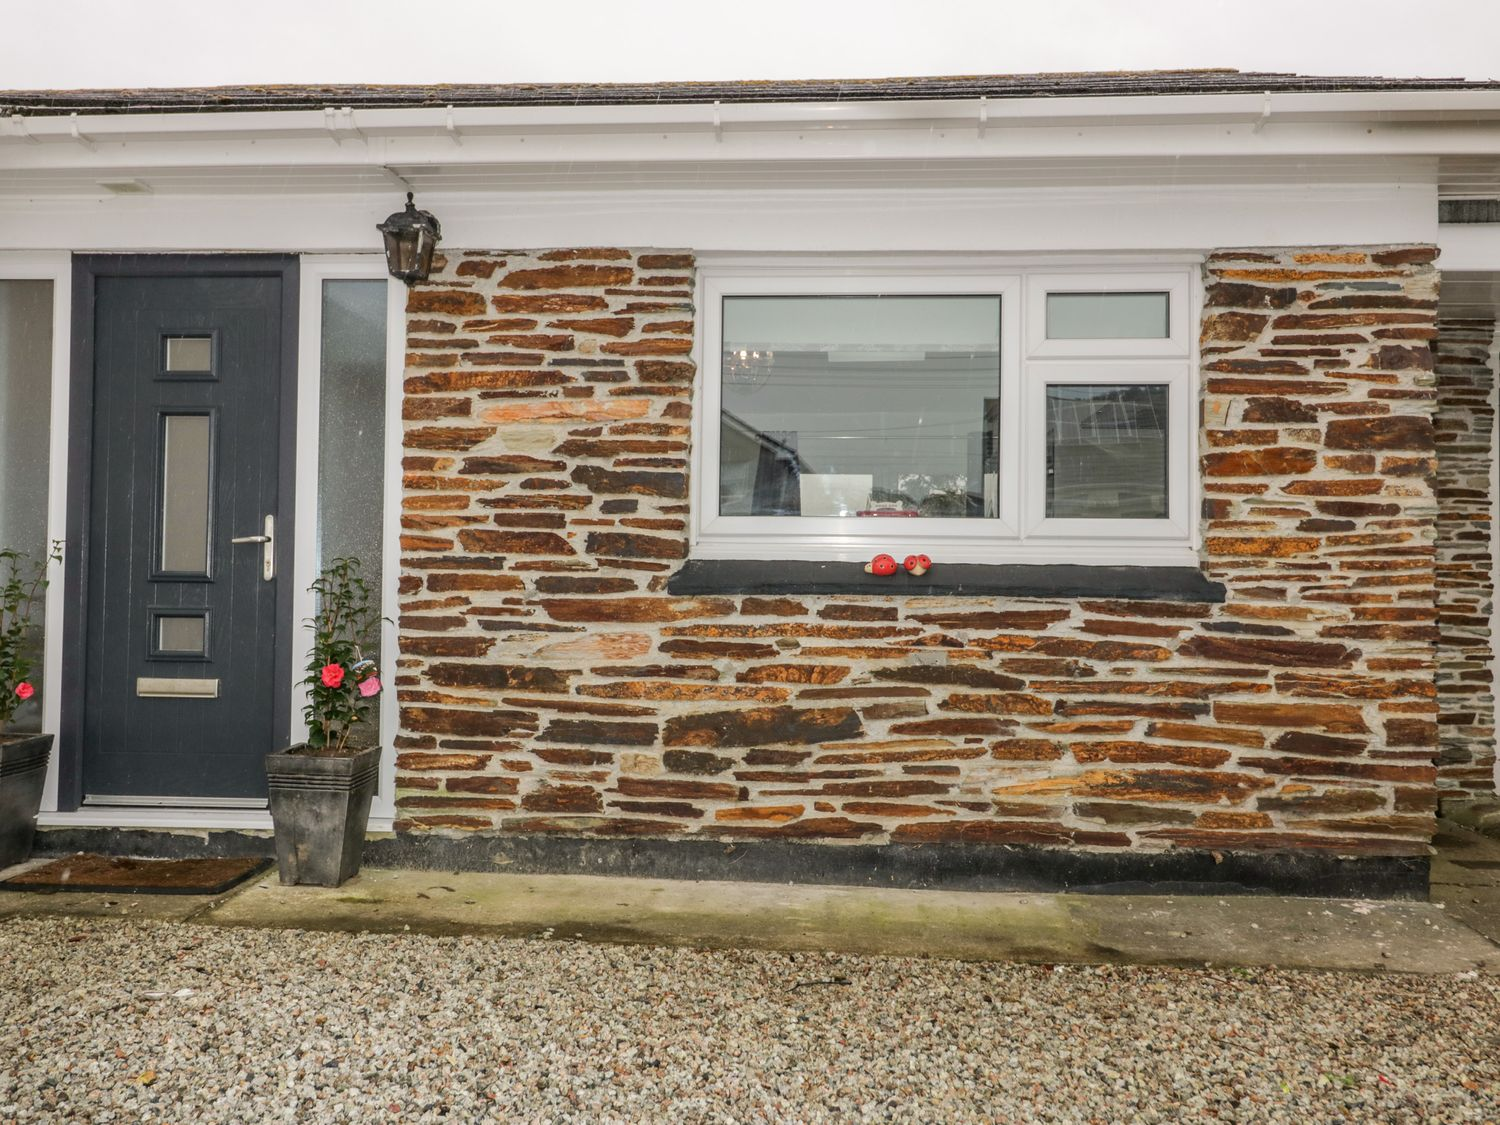 26 Treloggan Road - Cornwall - 1038131 - photo 1